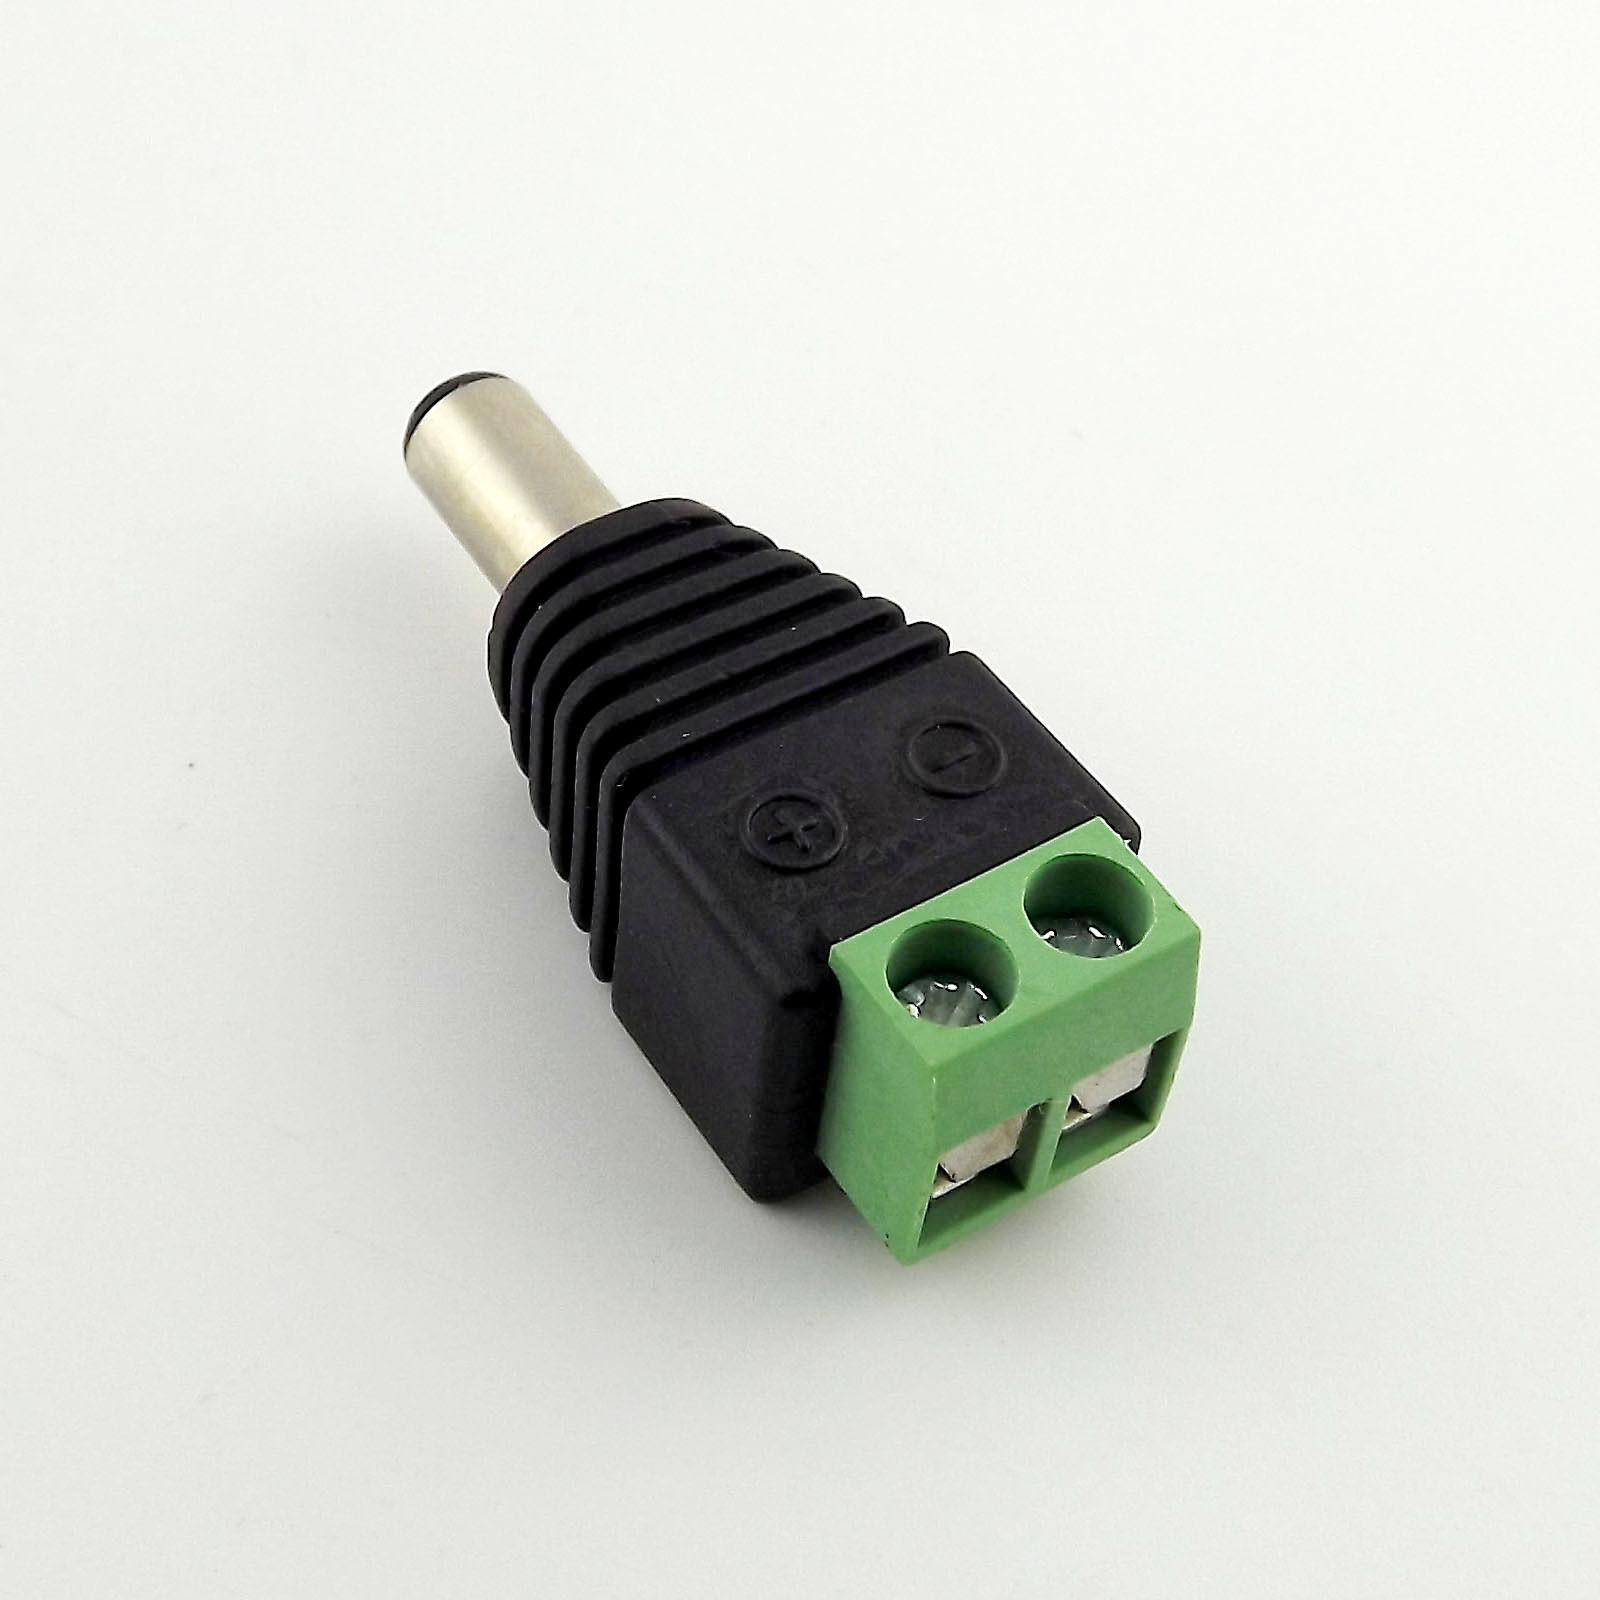 DC Power Plug 5.5 x 2.5mm Male CCTV Video LED Balun Terminals Connector Adapter